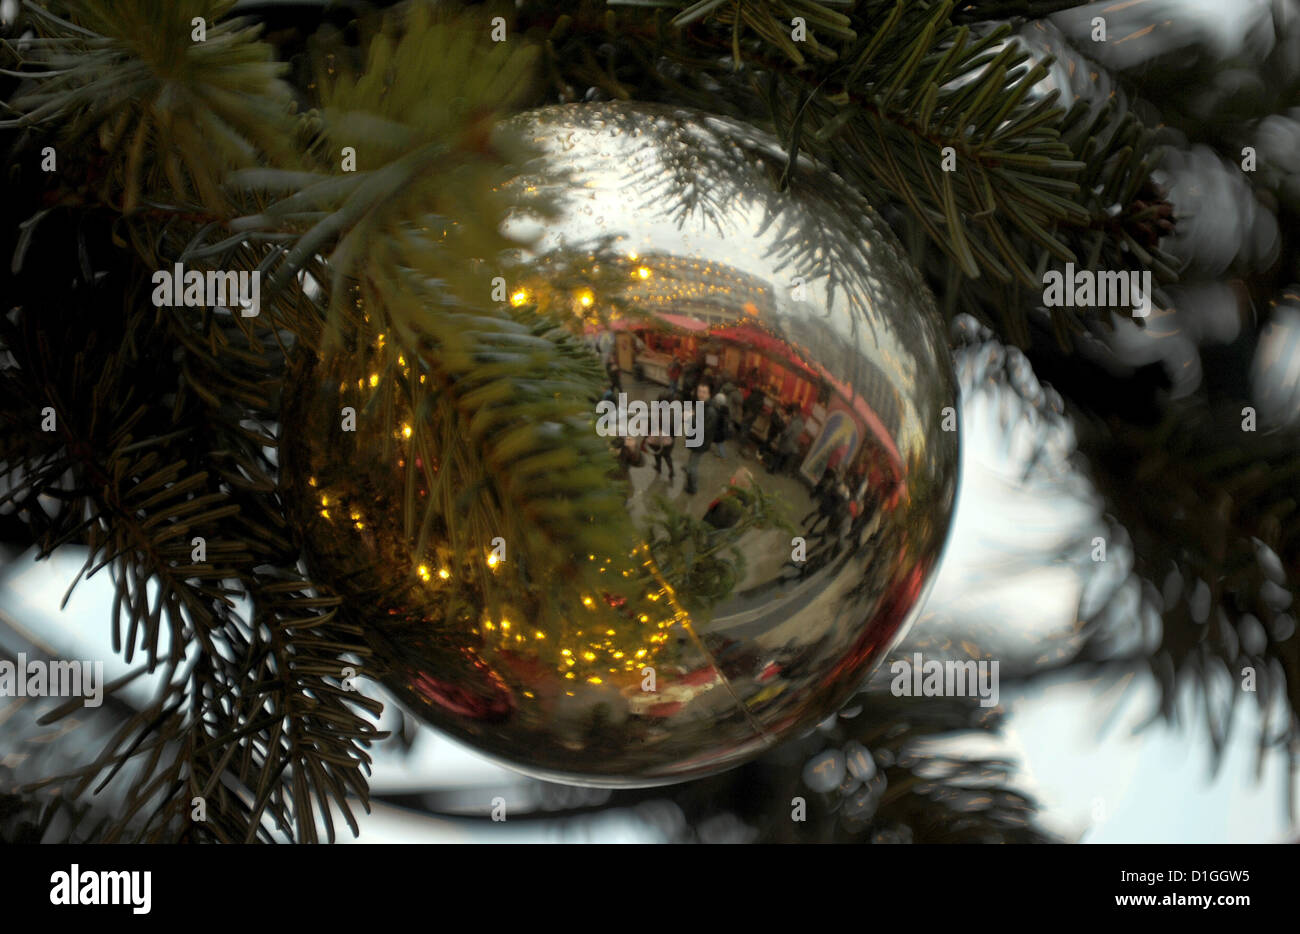 The reflection of passing visitors appears on a christmas tree bauble on the Christmas market in Cologne, Germany - Stock Image